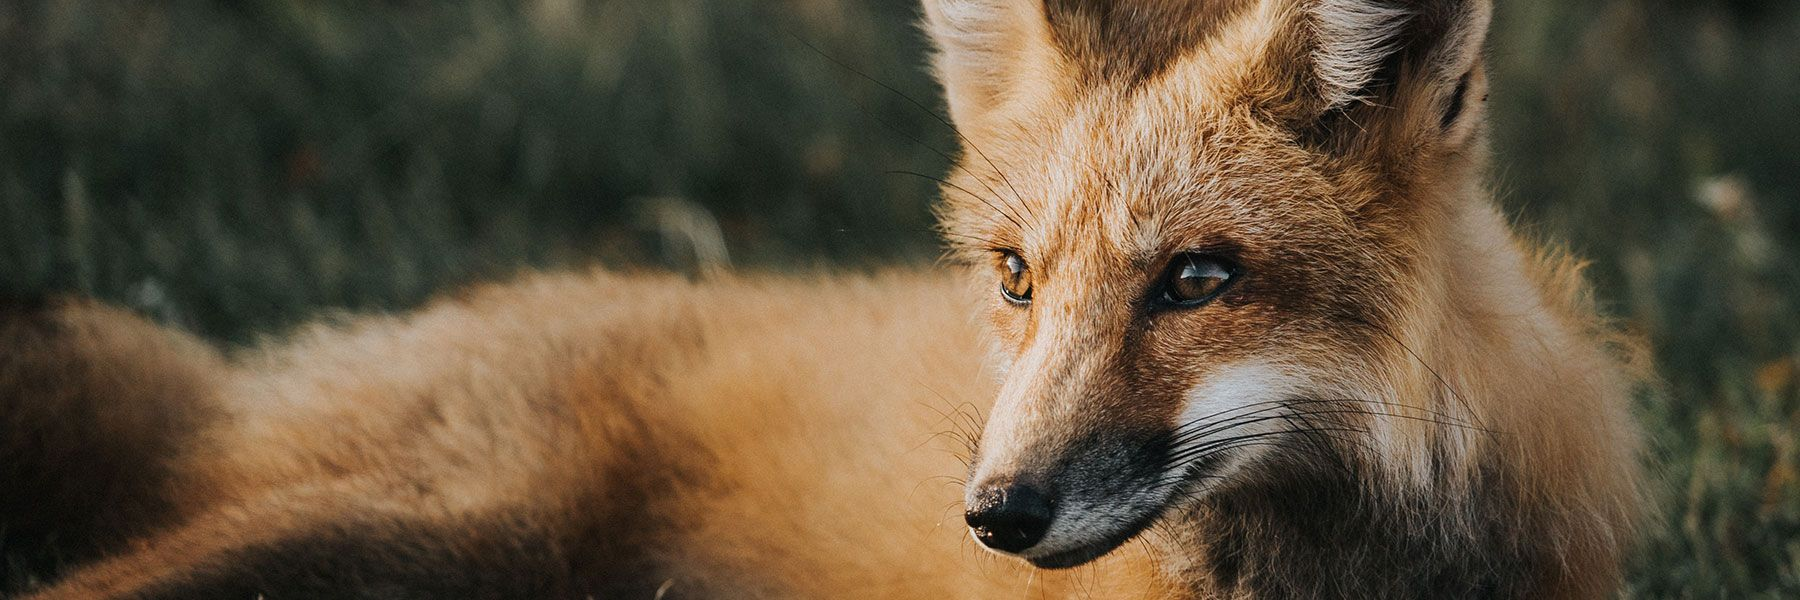 Environmentally friendly pest prevention for wildlife like foxes